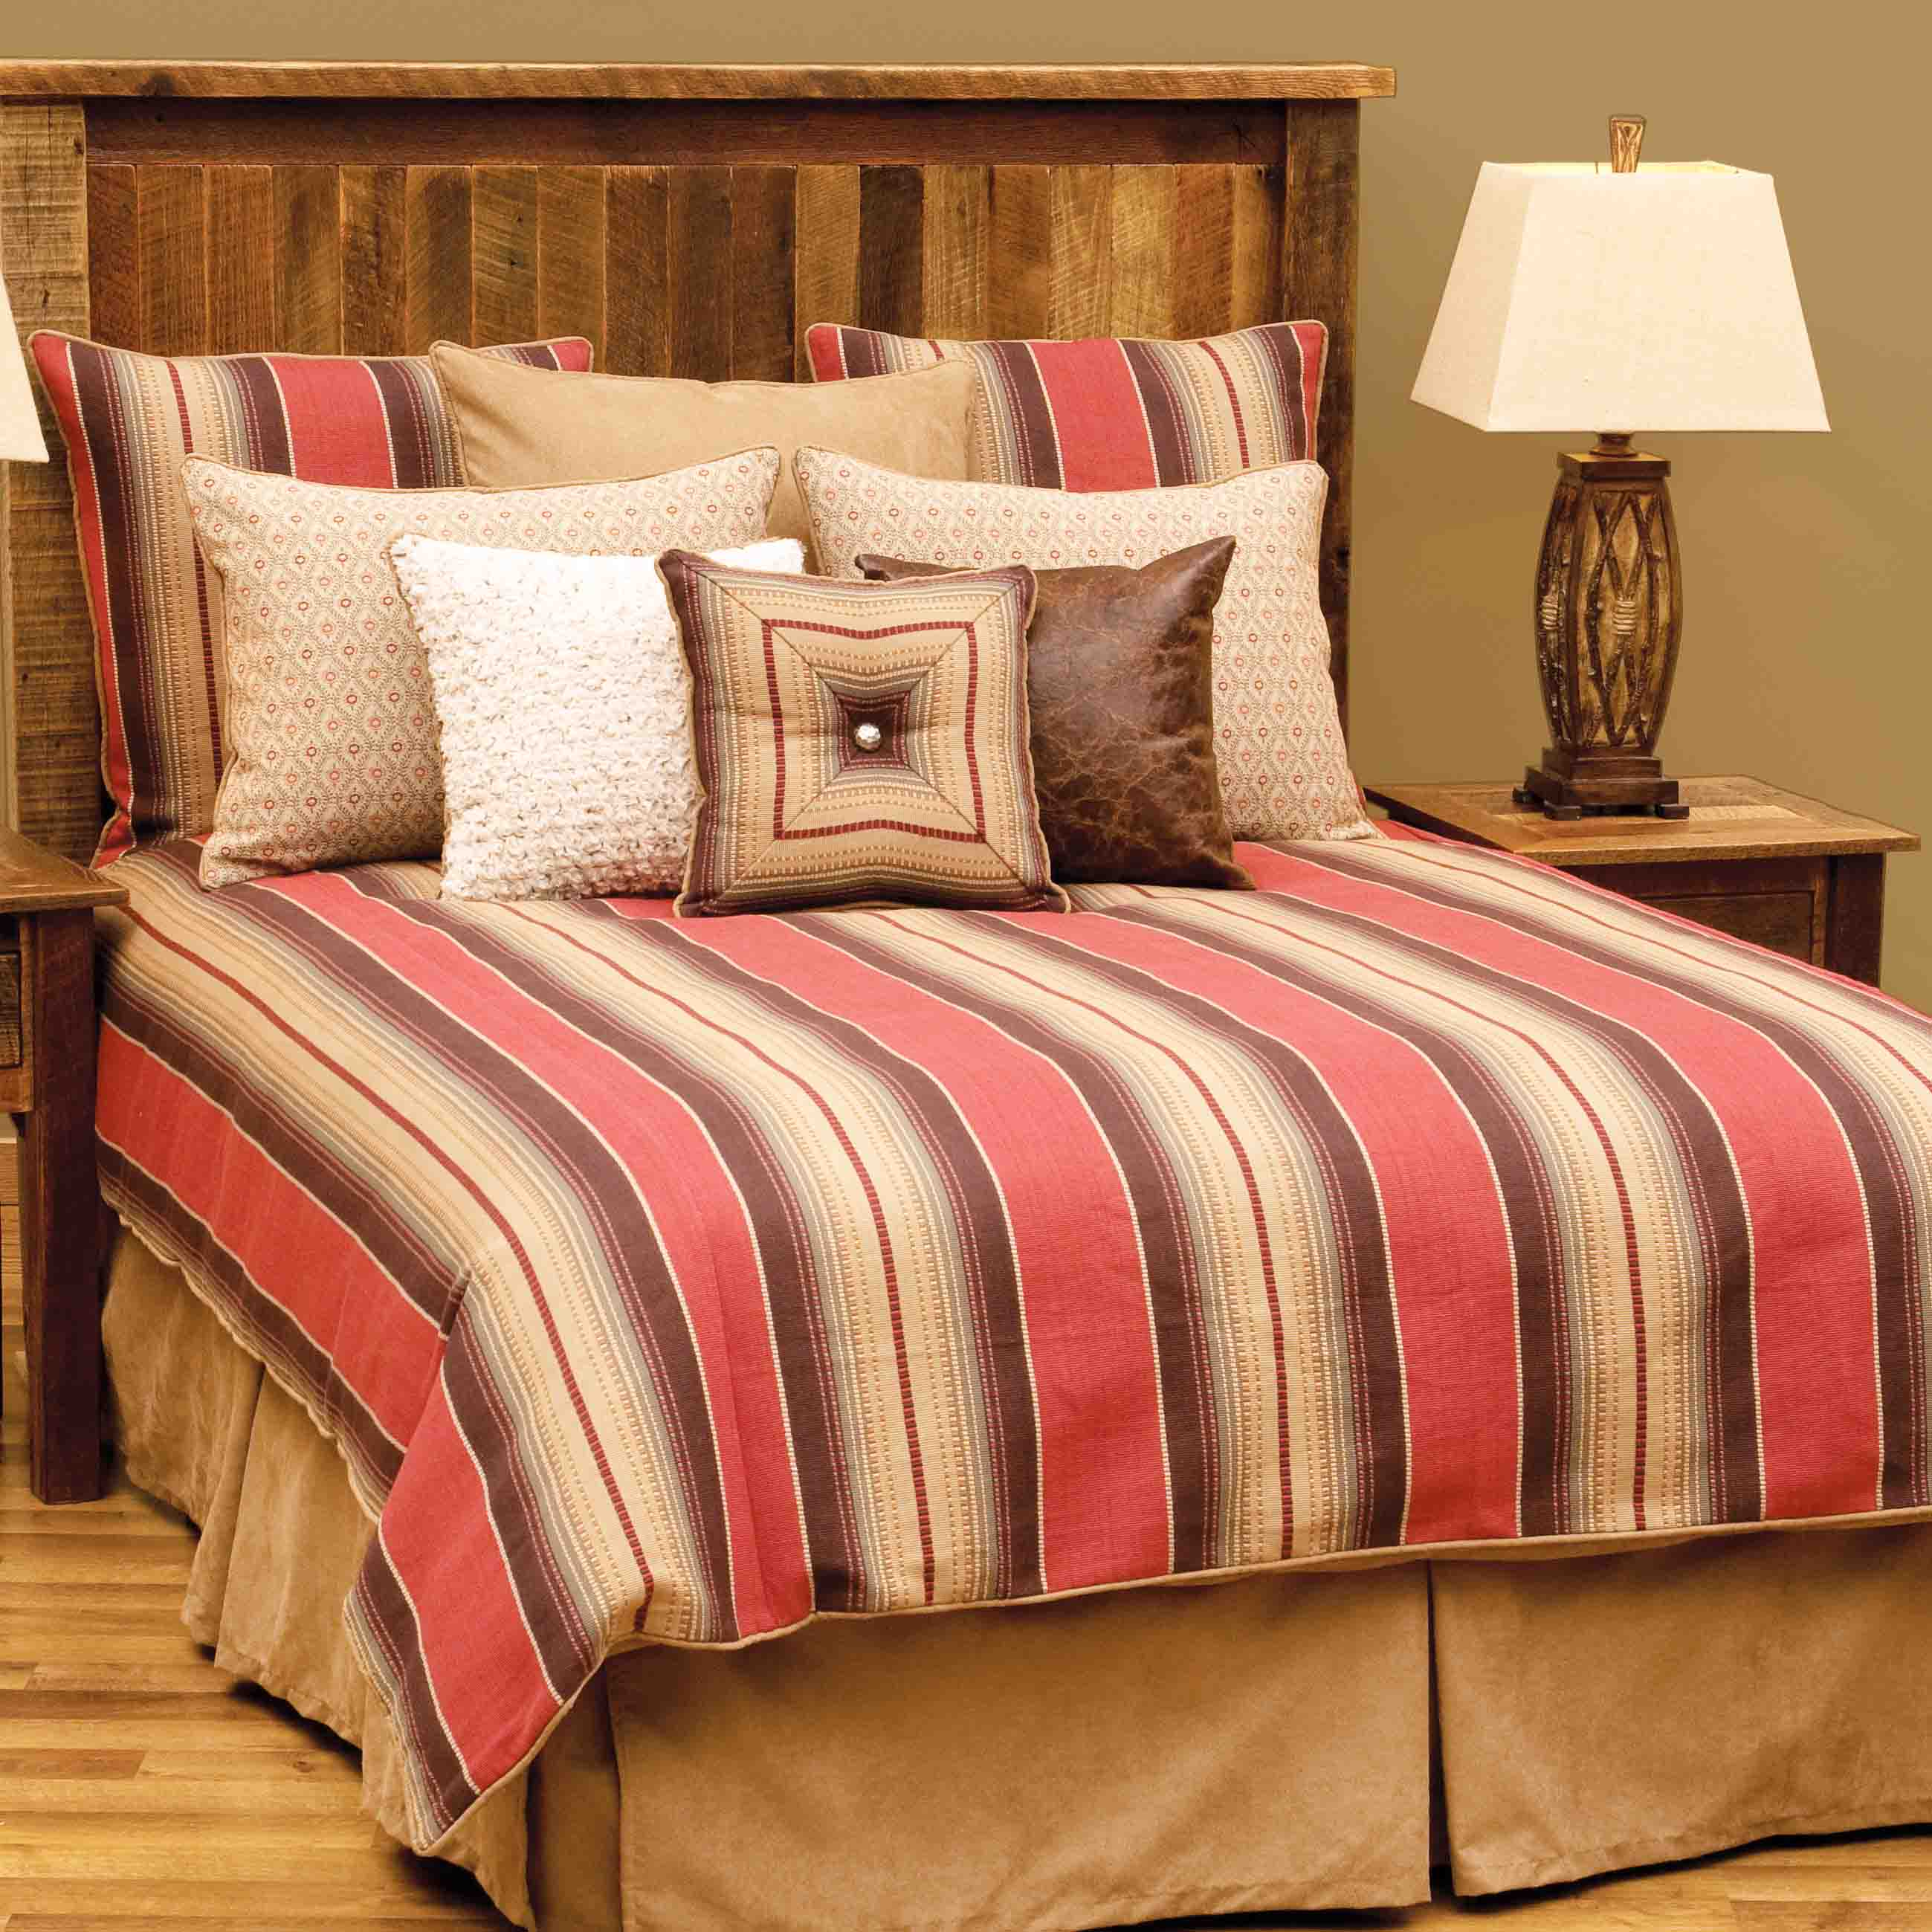 bed p brown set crestwood comforter comforters rustic pc saddle